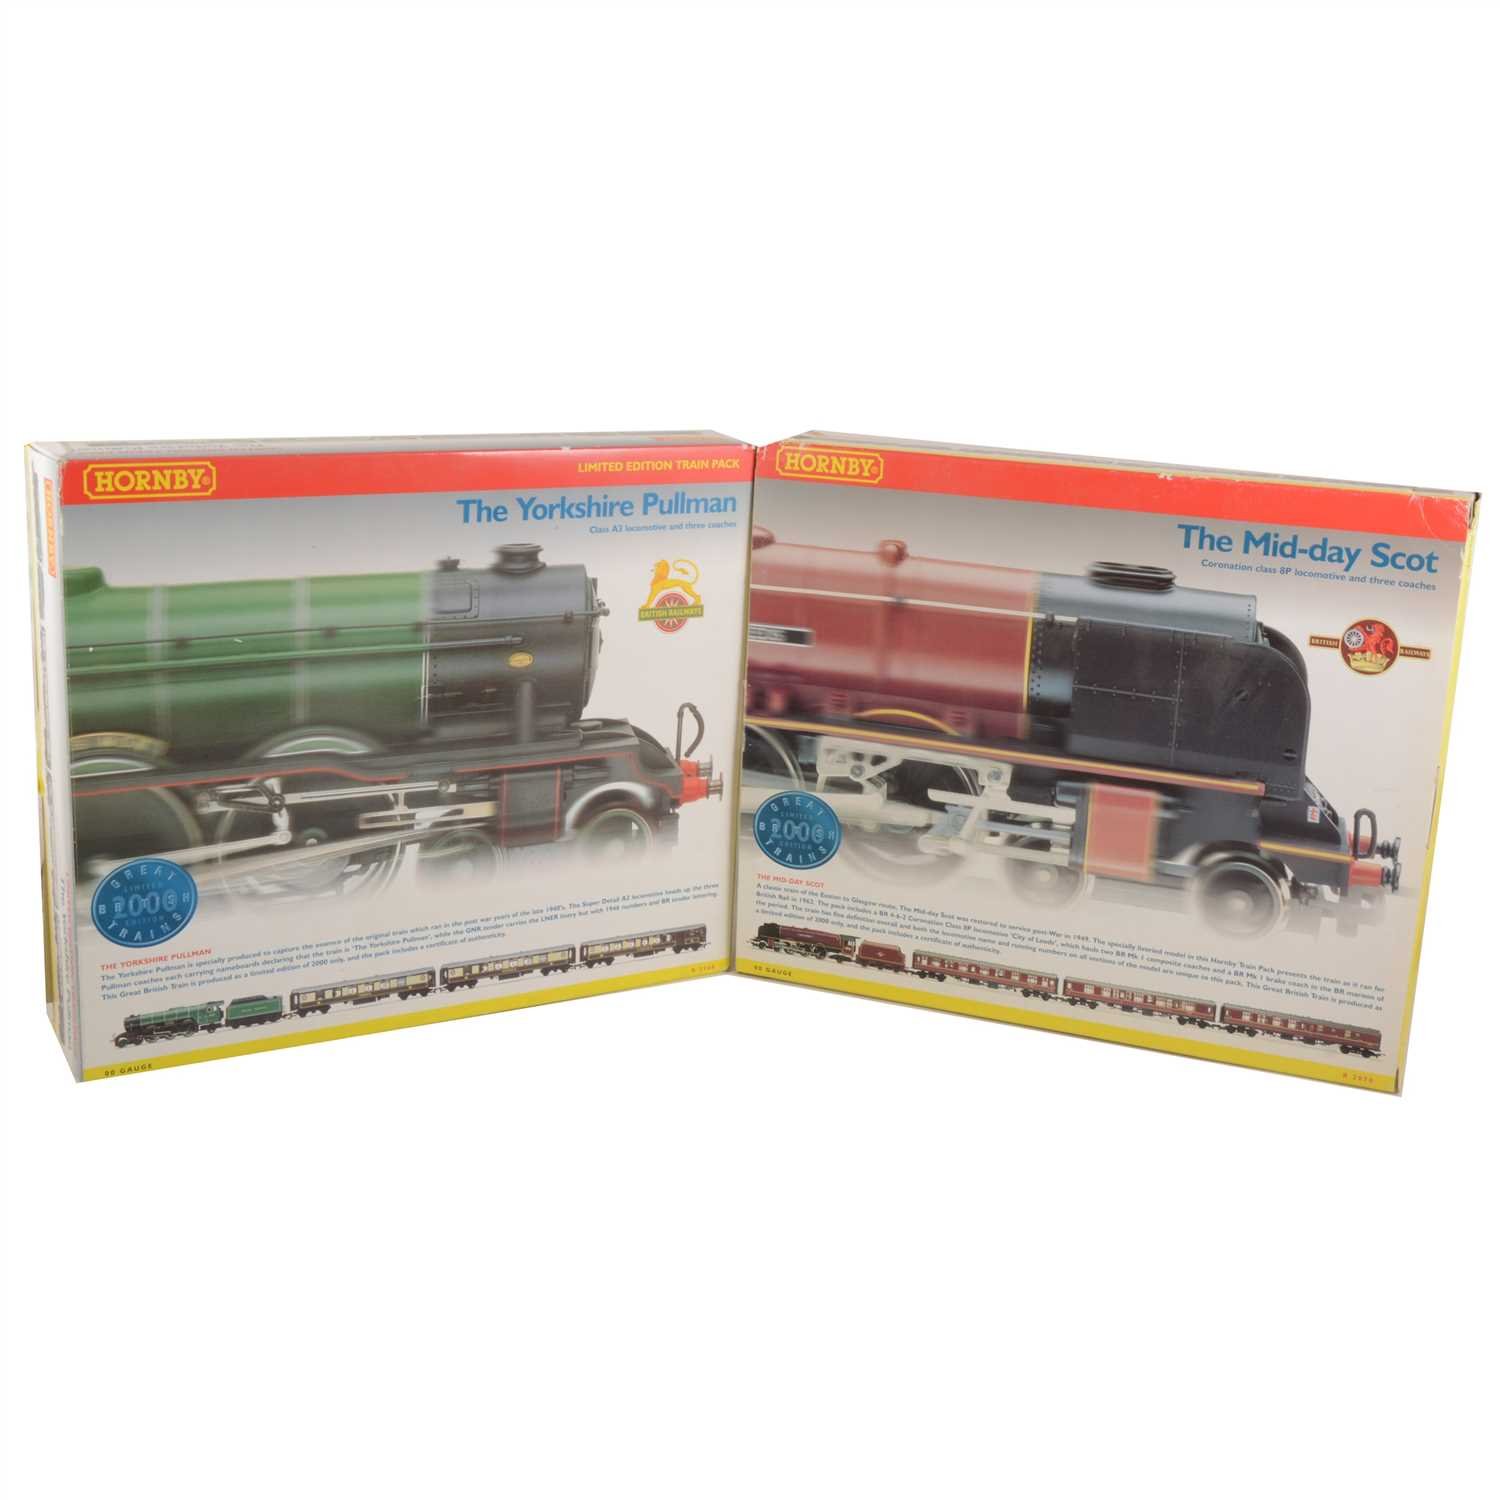 Lot 46-Hornby OO gauge model railway sets; two including 'The Yorkshire Pullman', 'The Mid-Day Scot'